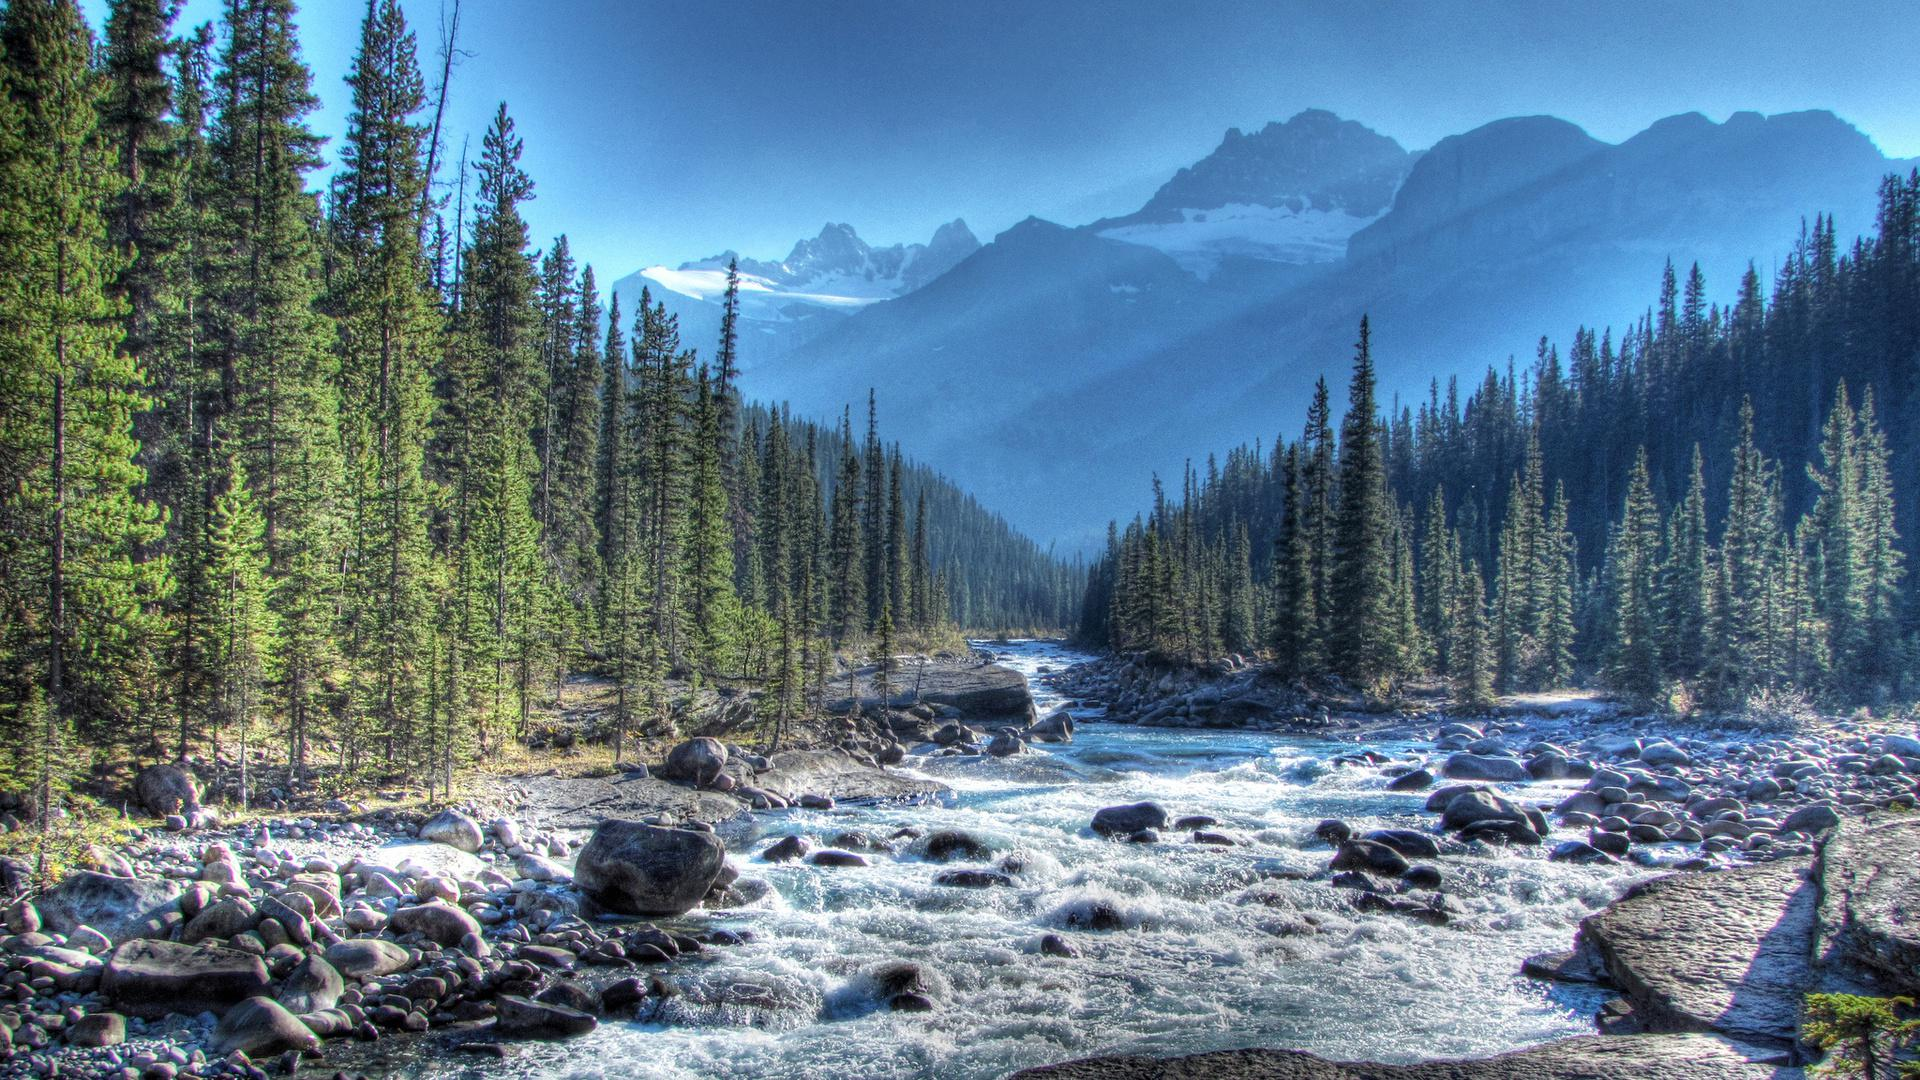 Mistaya rive alberta canada wallpaper 1920x1080 30996 for Wallpaper canada